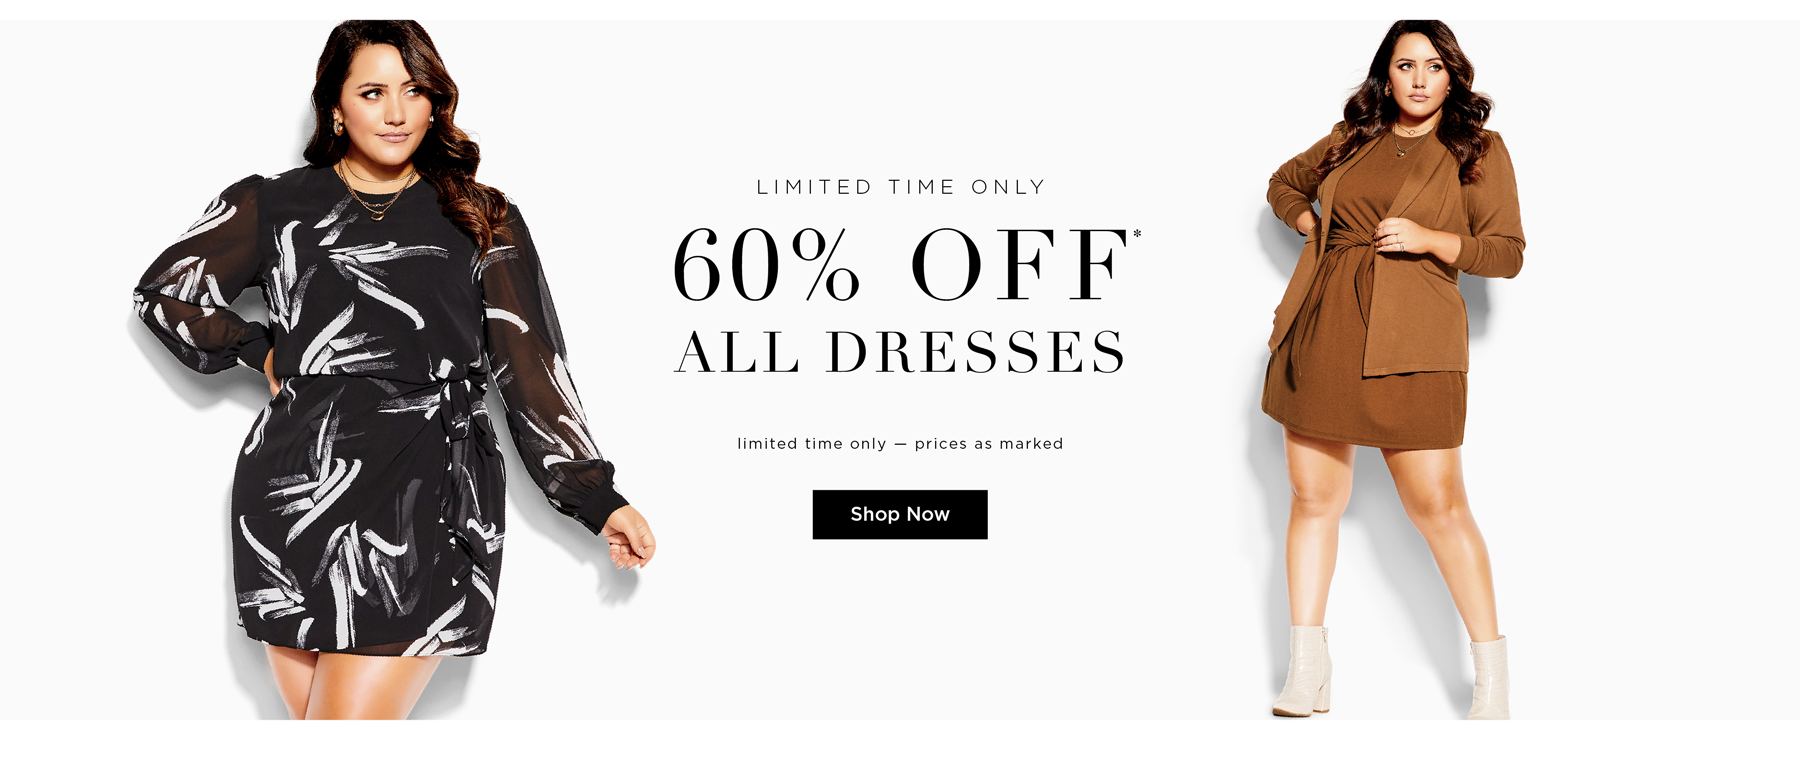 60% Off* All Dresses. Conditions apply. Shop Now.